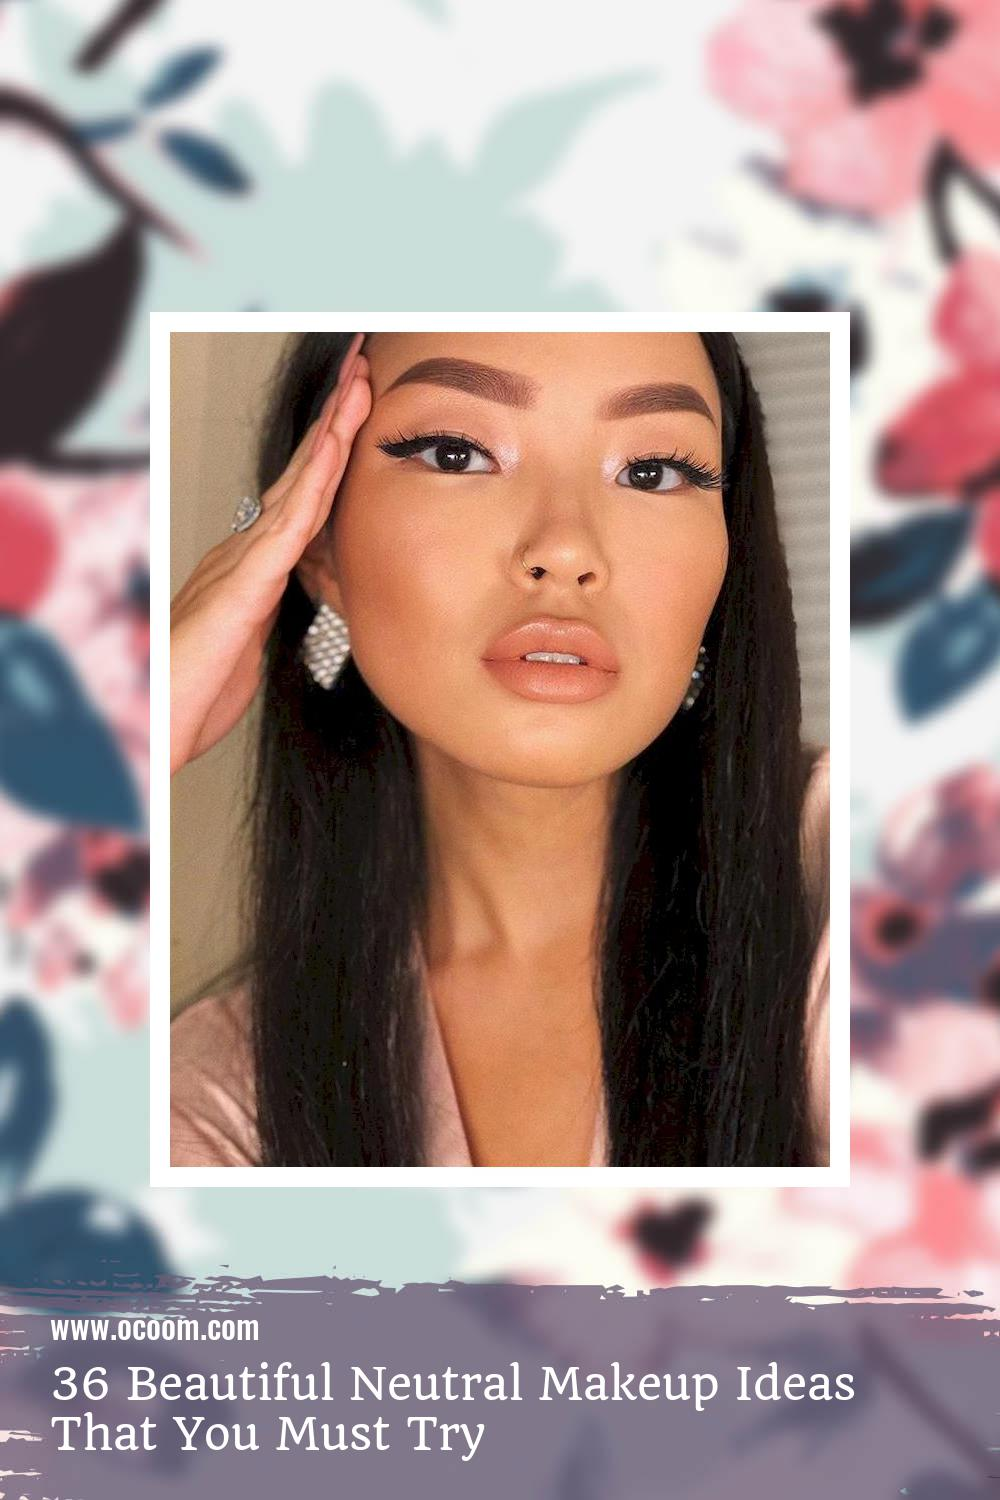 36 Beautiful Neutral Makeup Ideas That You Must Try 11